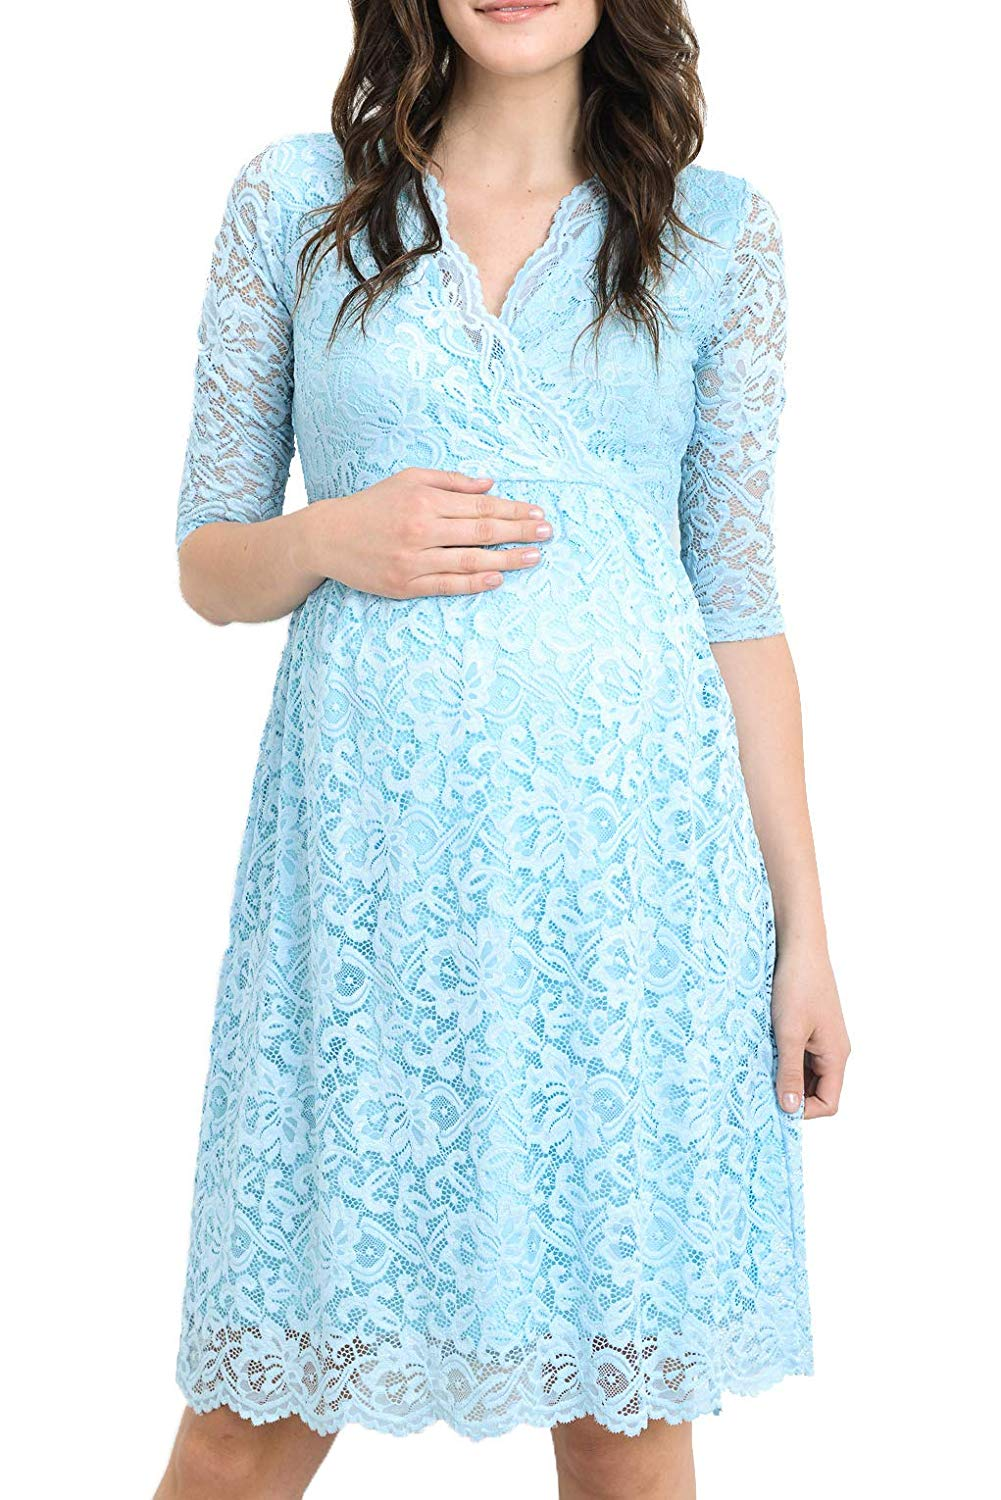 Blue Lace Baby Shower Dress